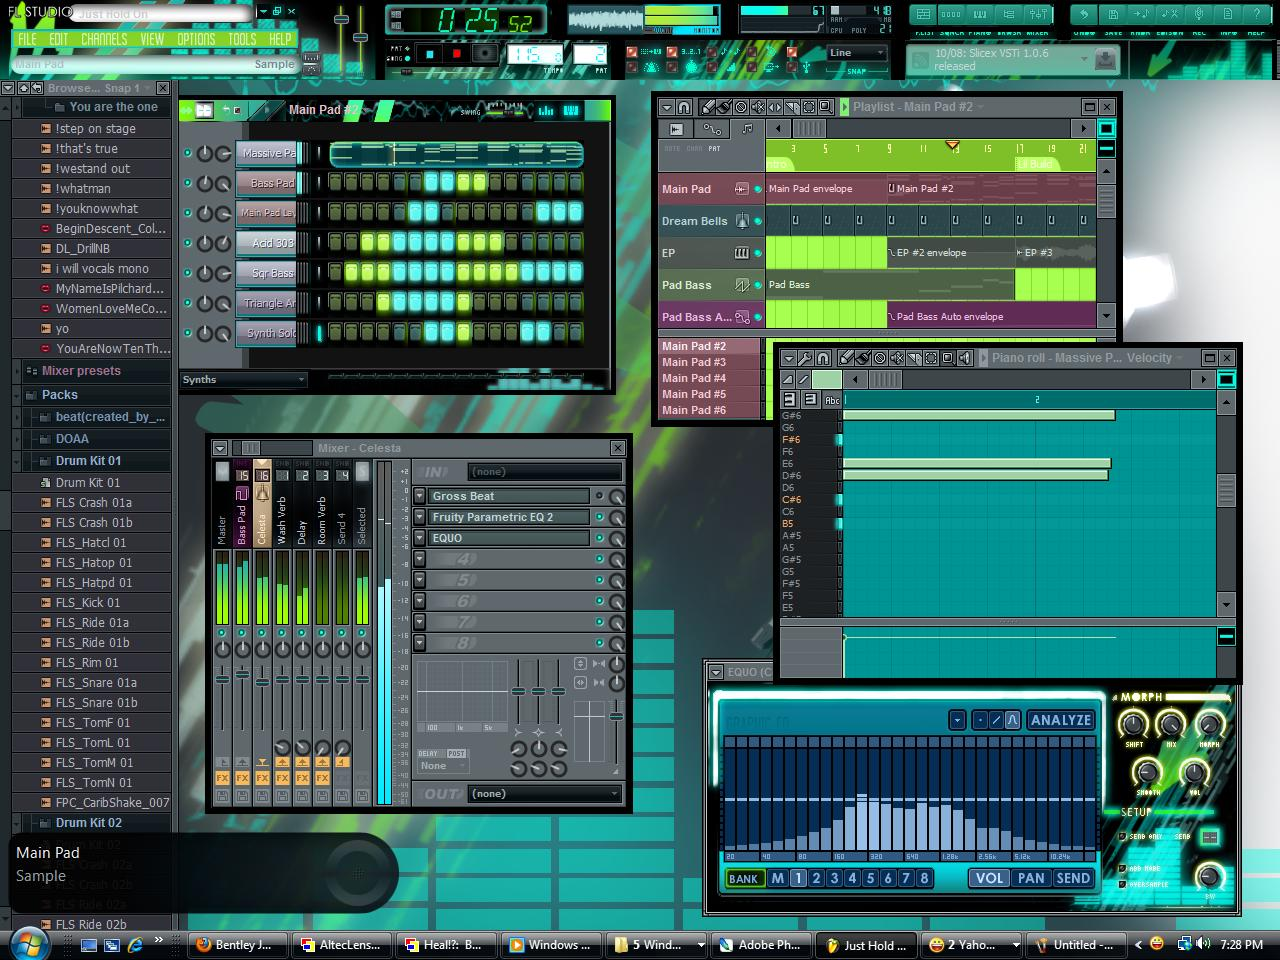 how to get good at fl studio